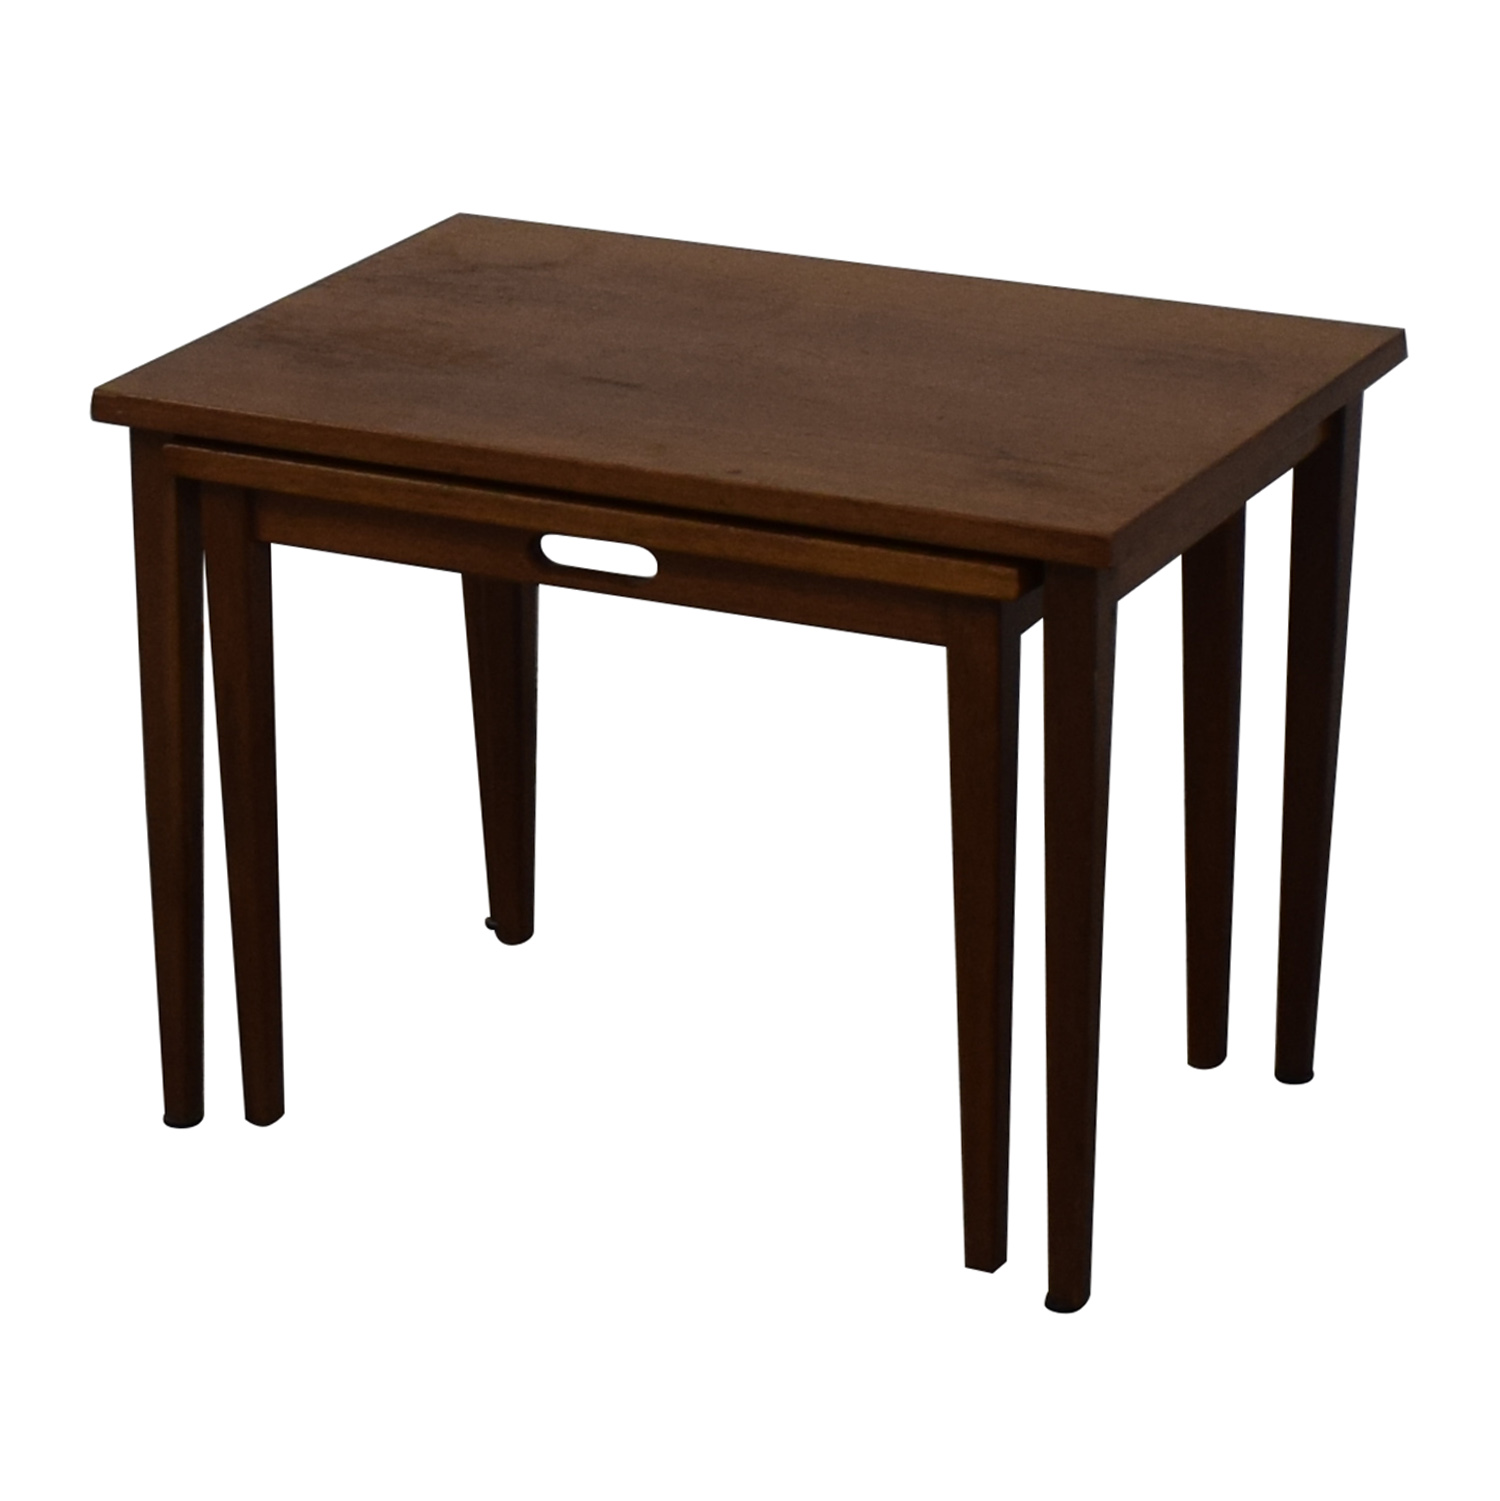 Decorative Nesting Coffee Tables sale